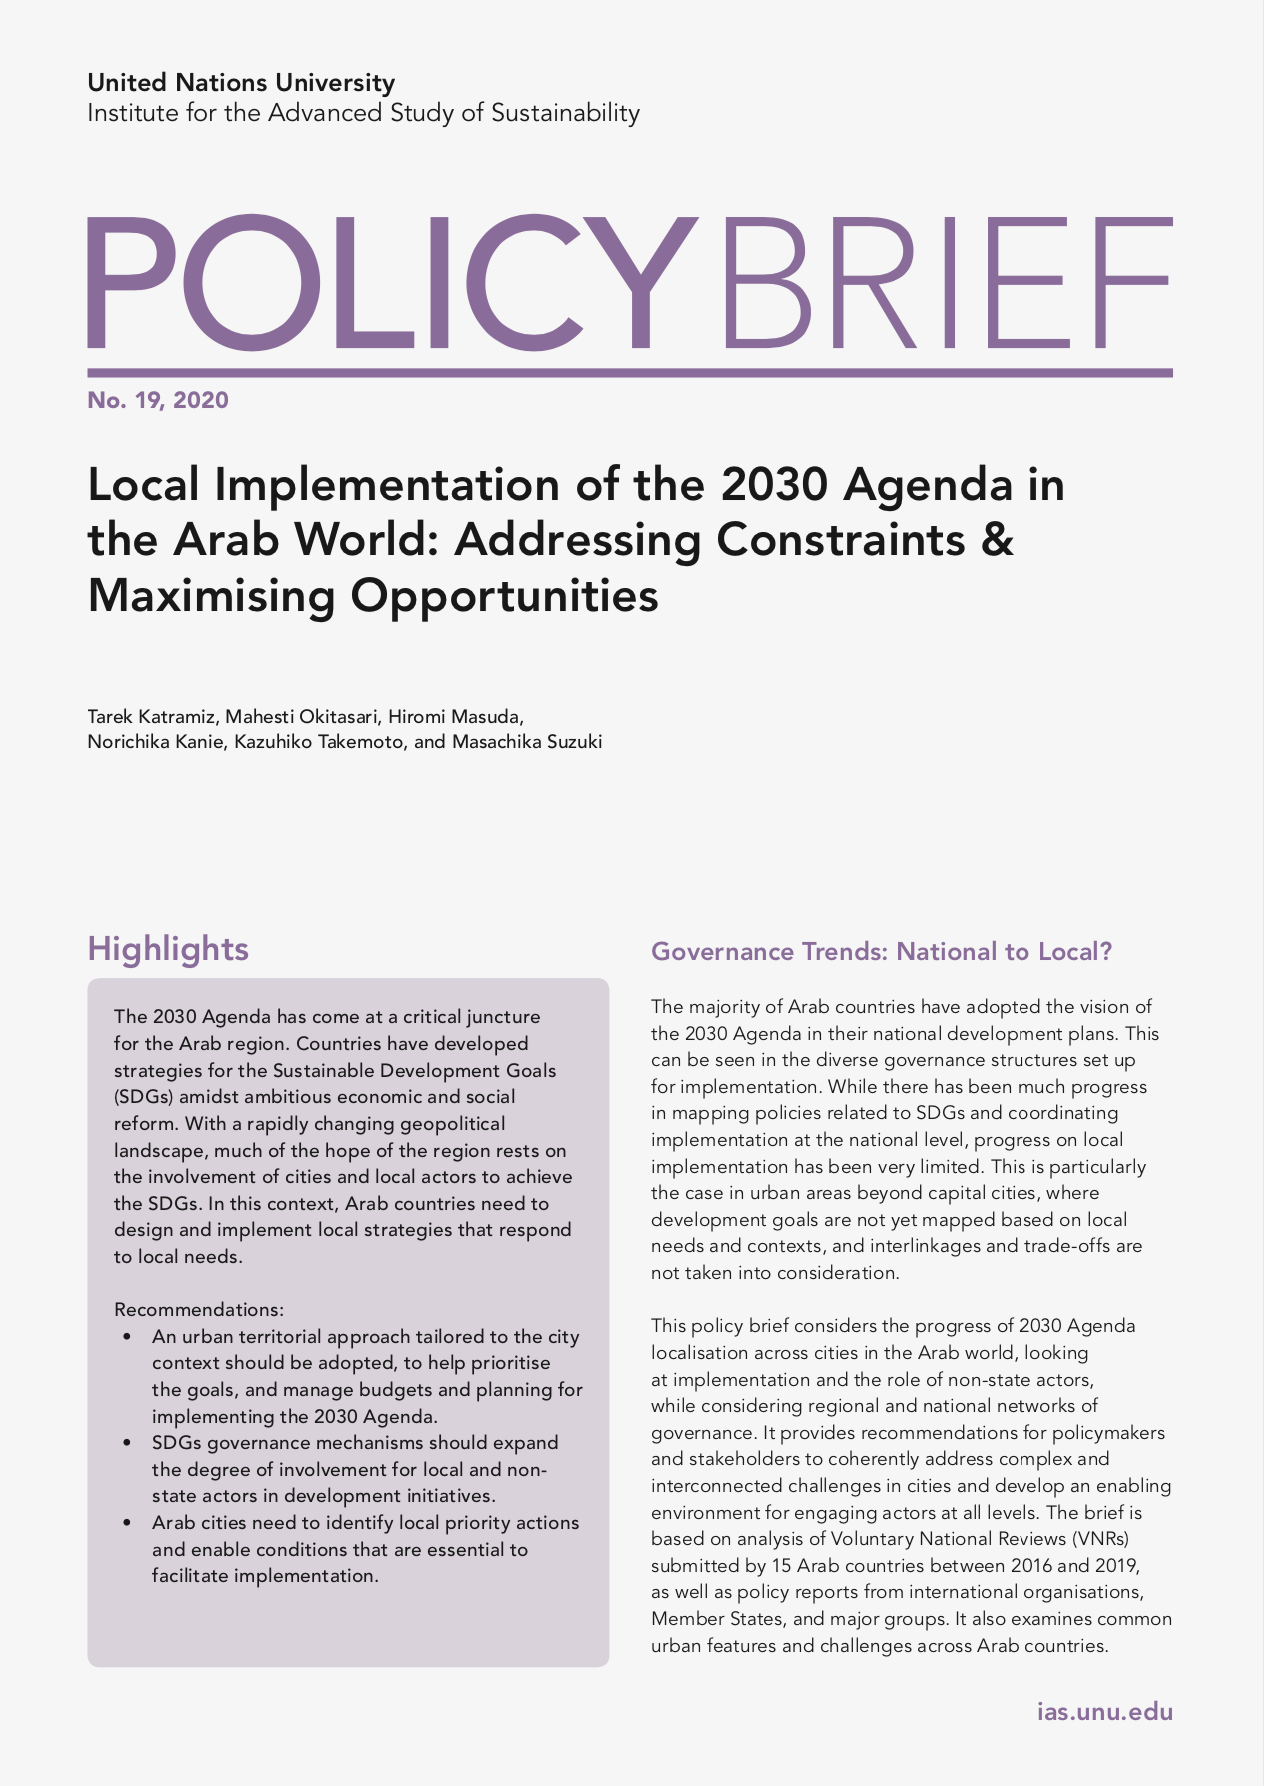 UNU-IAS Policy Brief No. 18, 2019